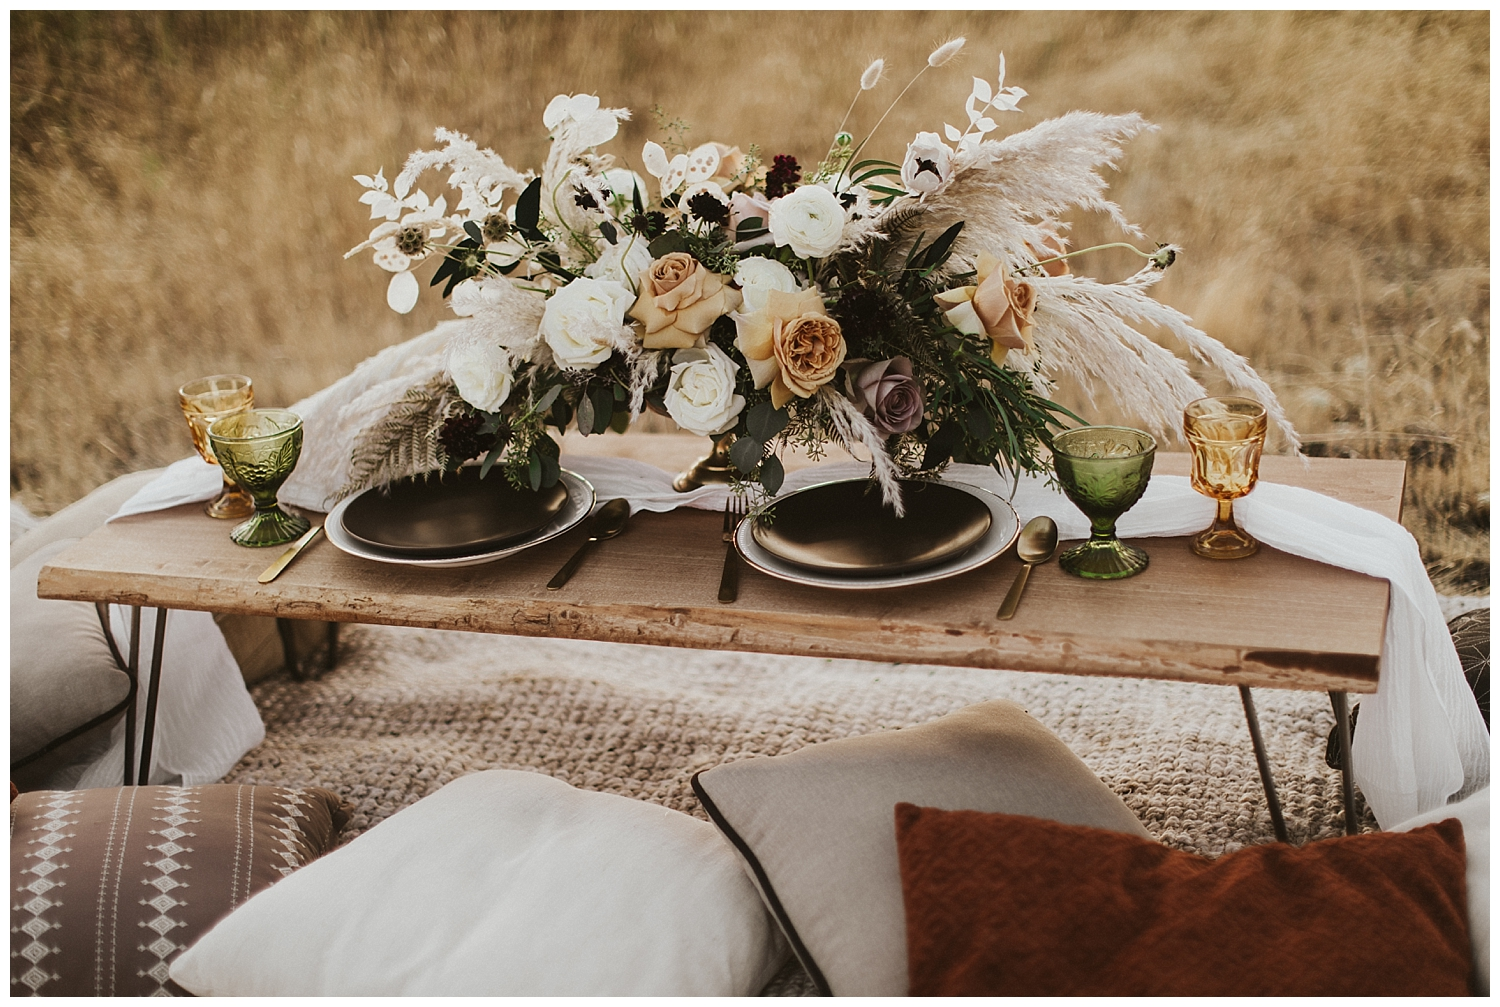 a small table set for two and adorned with a beautiful, dried bouquet